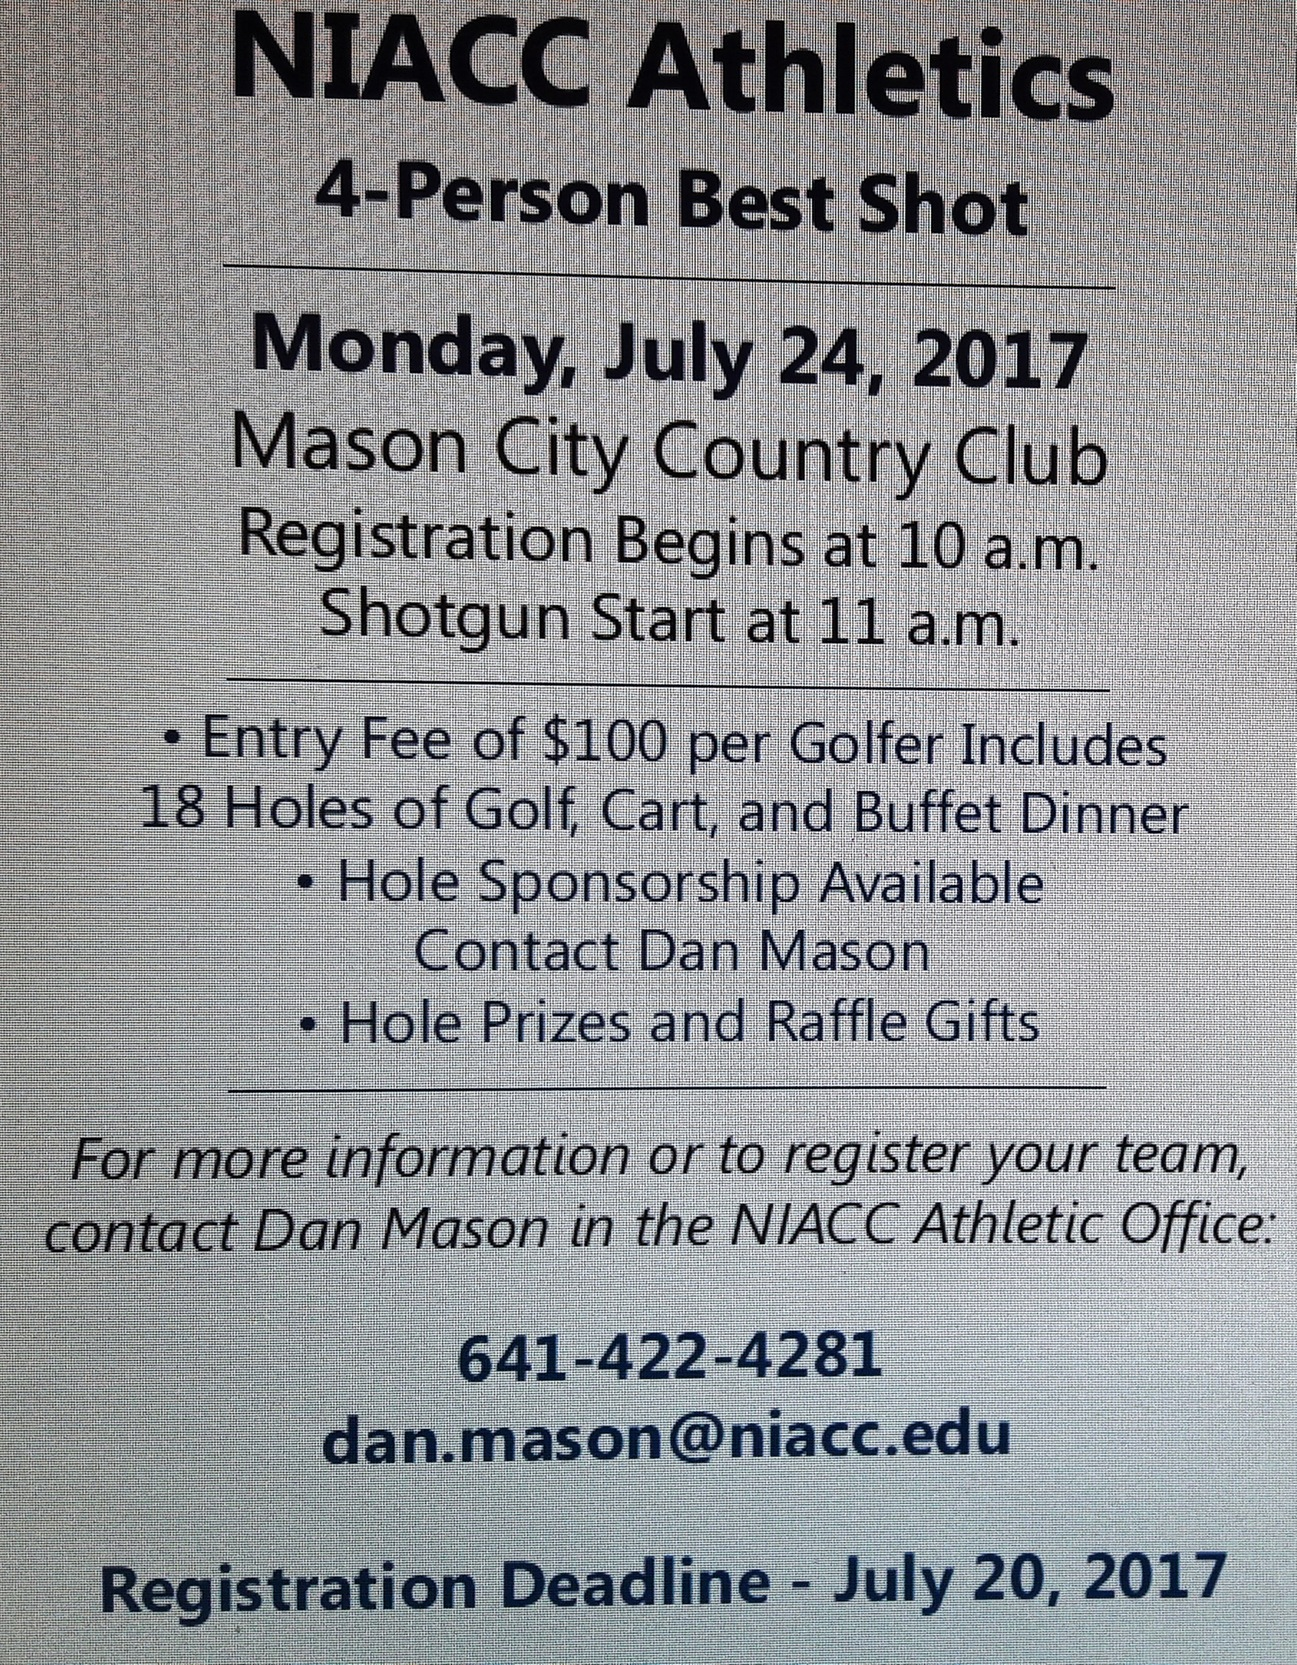 The NIACC golf outing is set for July 24 at the Mason City Country Club.